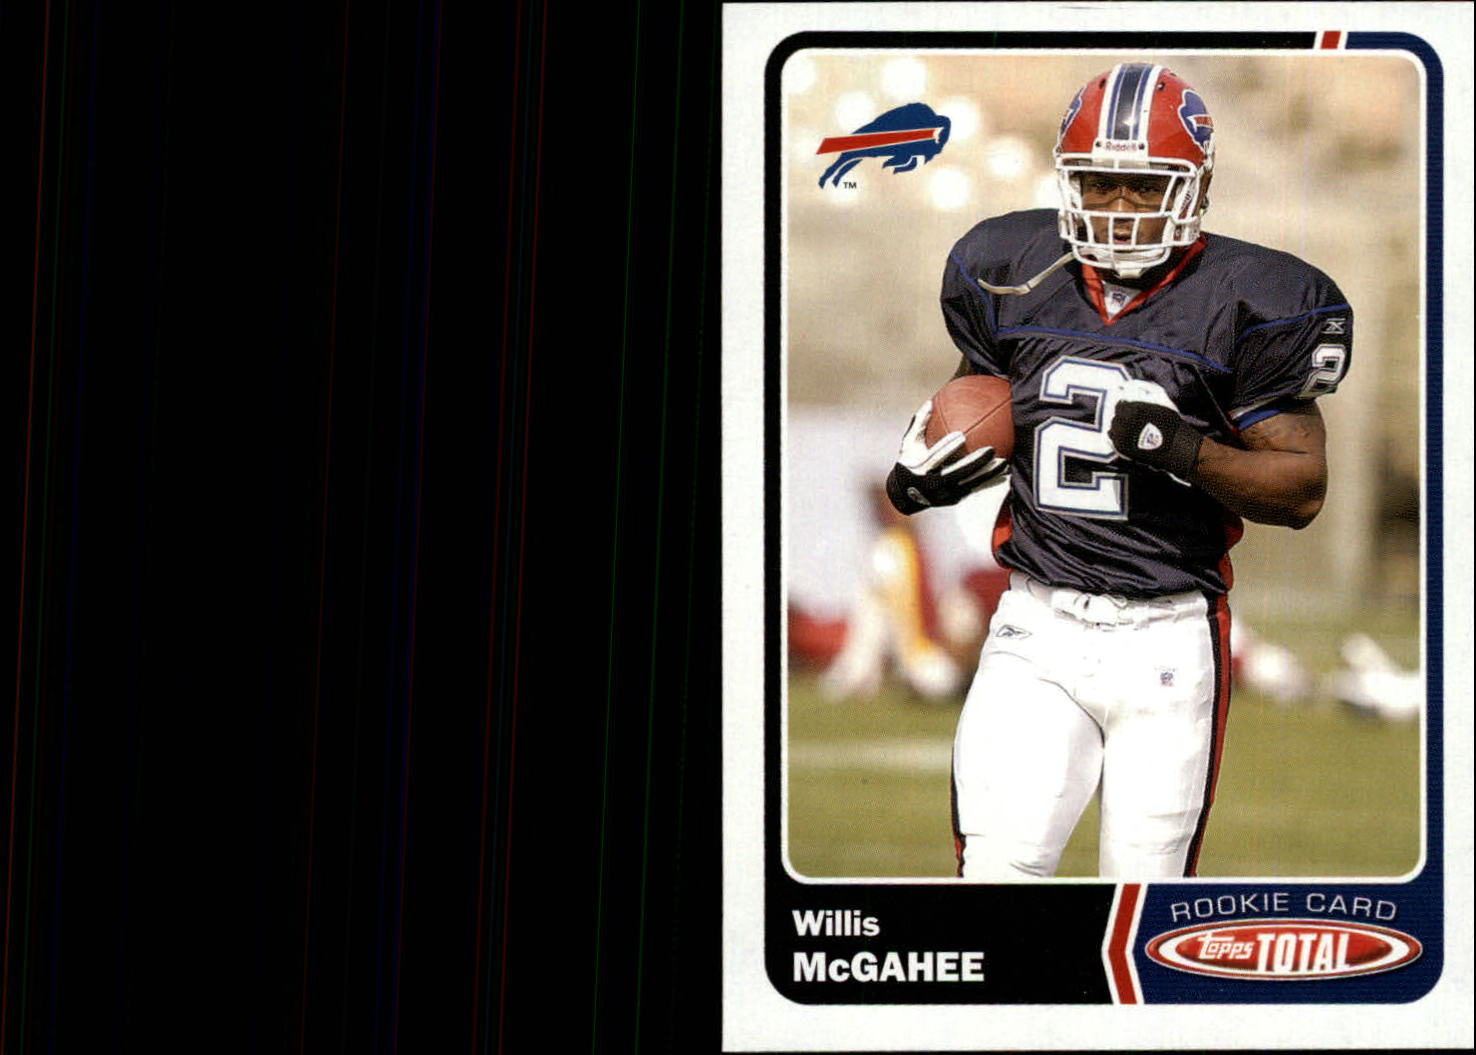 2003 Topps Total #470 Willis McGahee RC